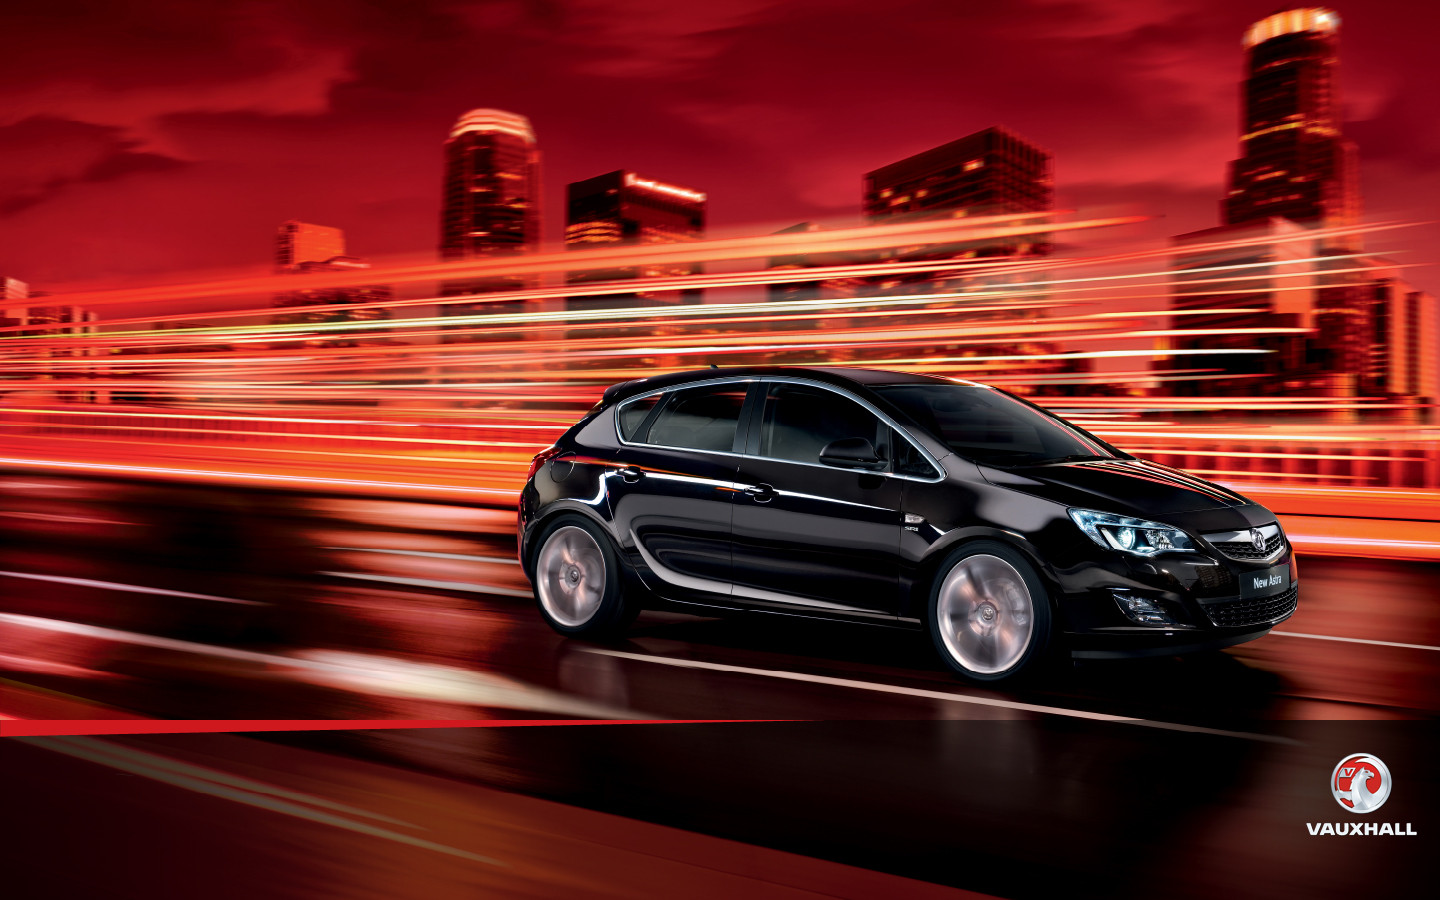 1440x900 - Vauxhall Wallpapers 15